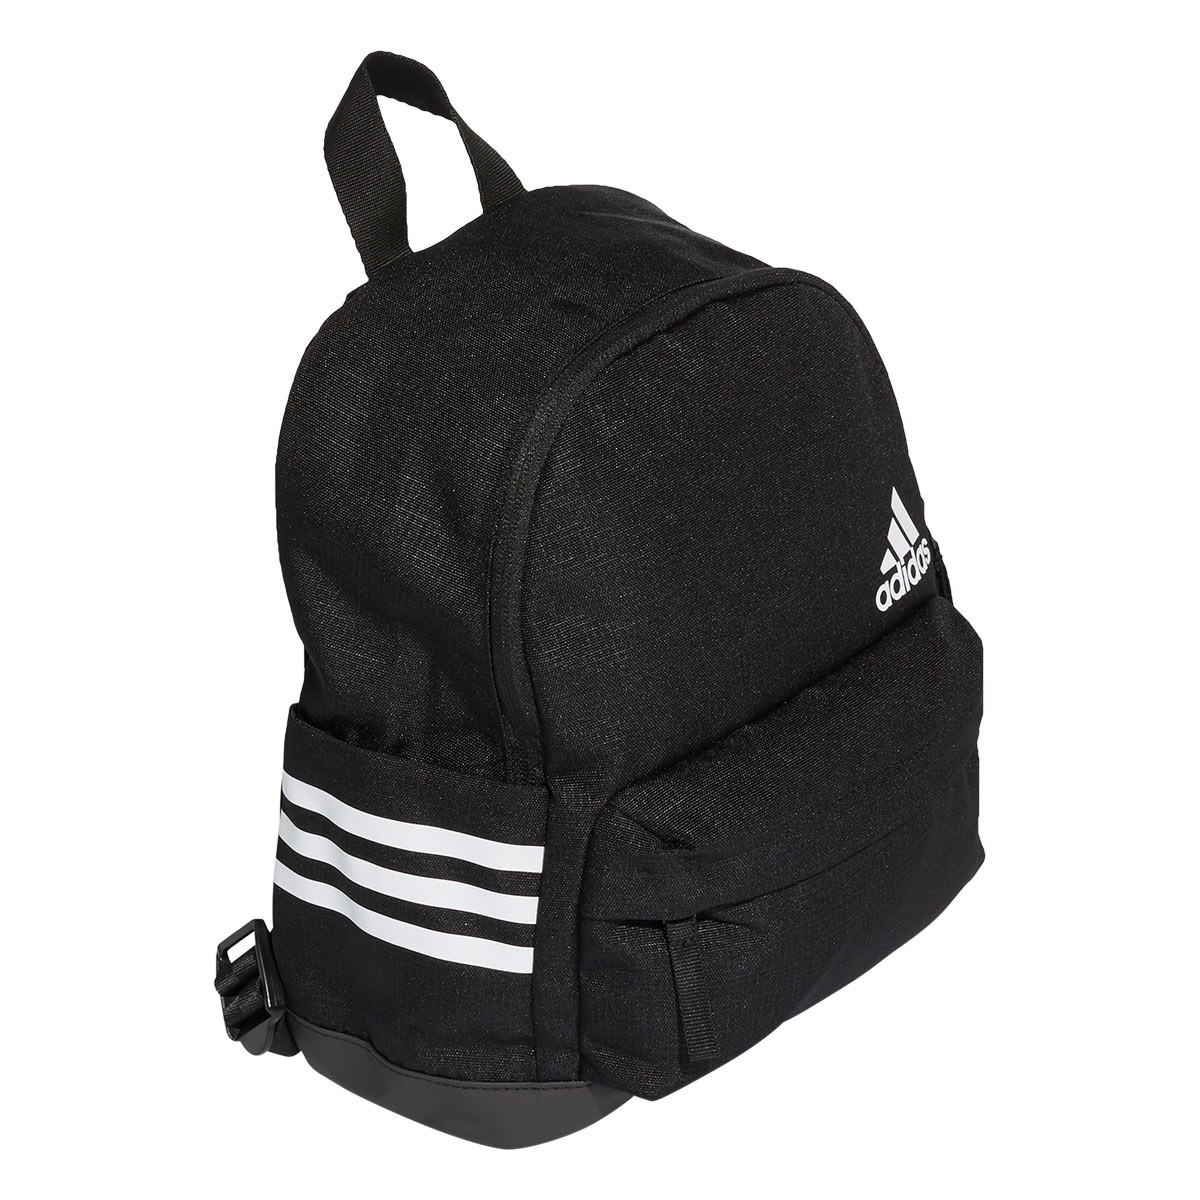 Vacunar Arriesgado yeso  Backpack adidas W 3 Stripes Training BP Black-White - Football store Fútbol  Emotion